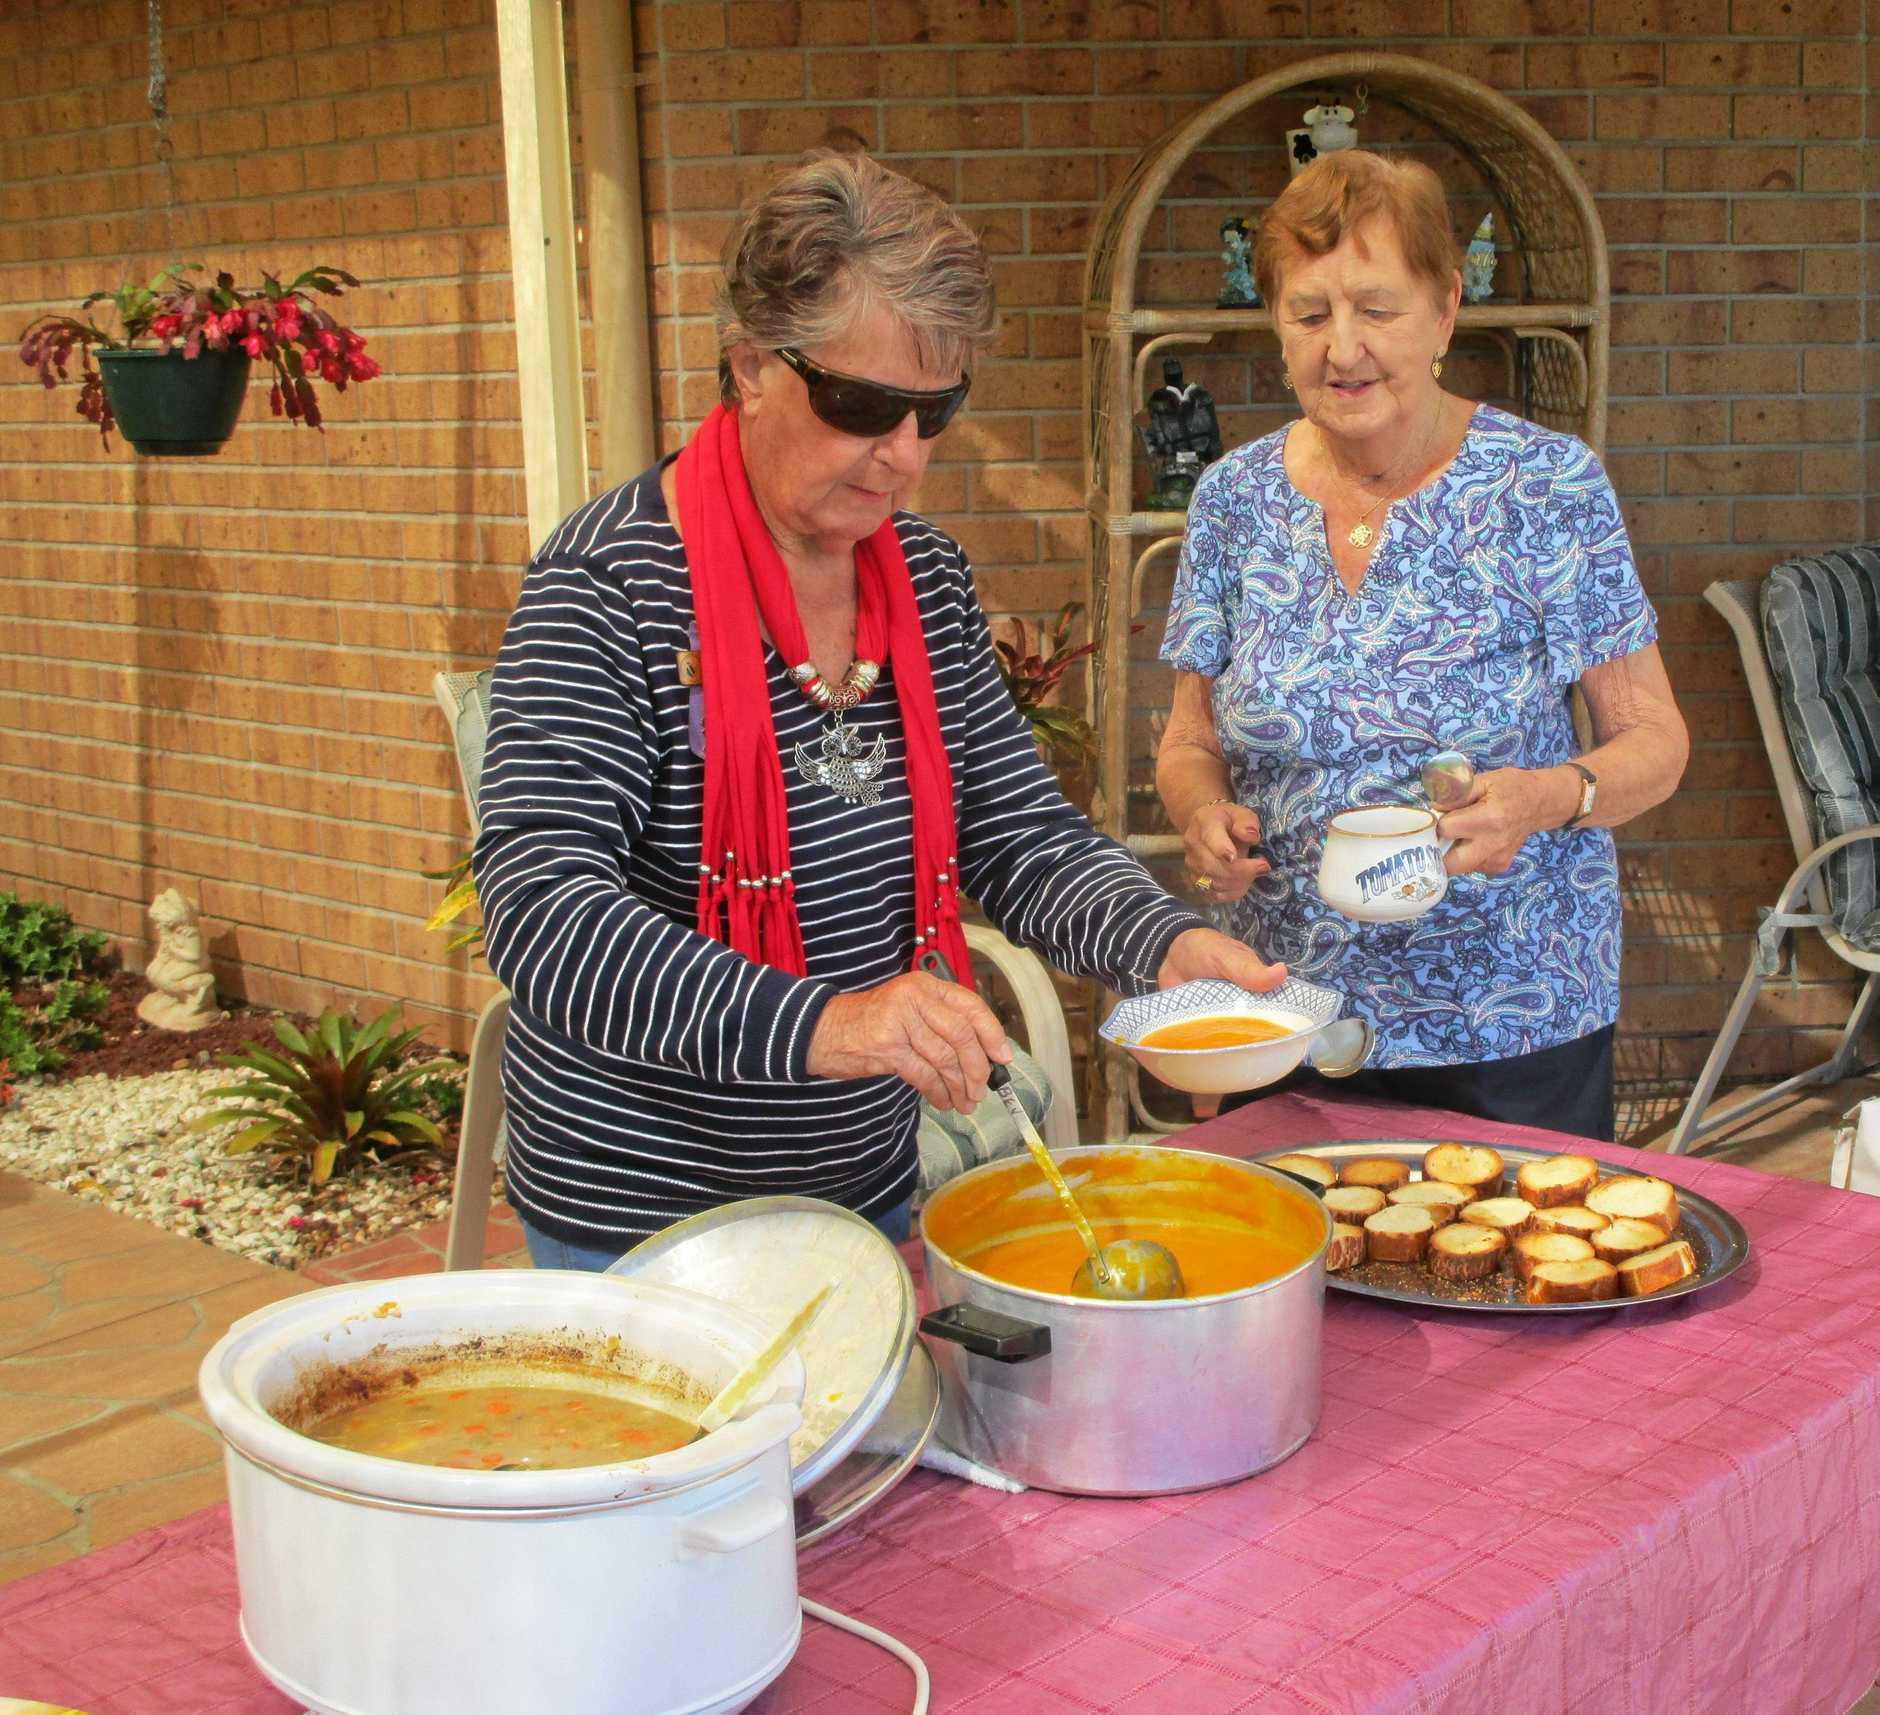 PUMPKIN SOUP KING: Geoff makes a lovely soup for Hervey Bay VIEW club members to enjoy during this cooler weather.